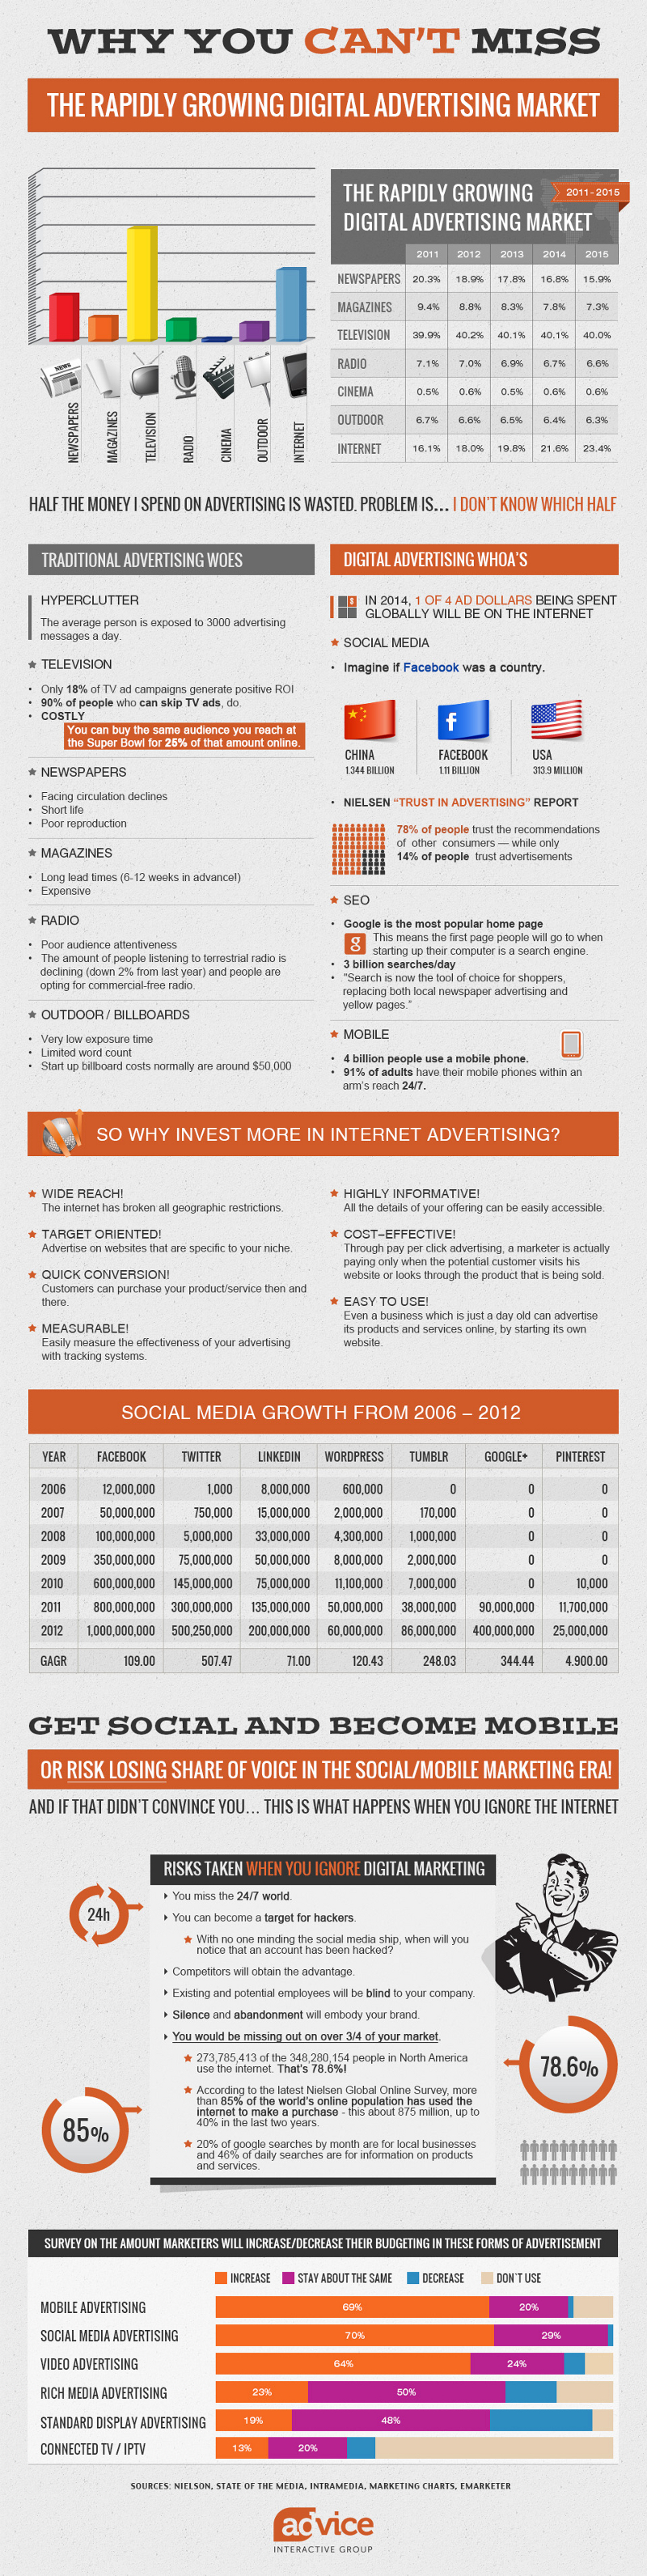 Digital-Advertising-Statistics